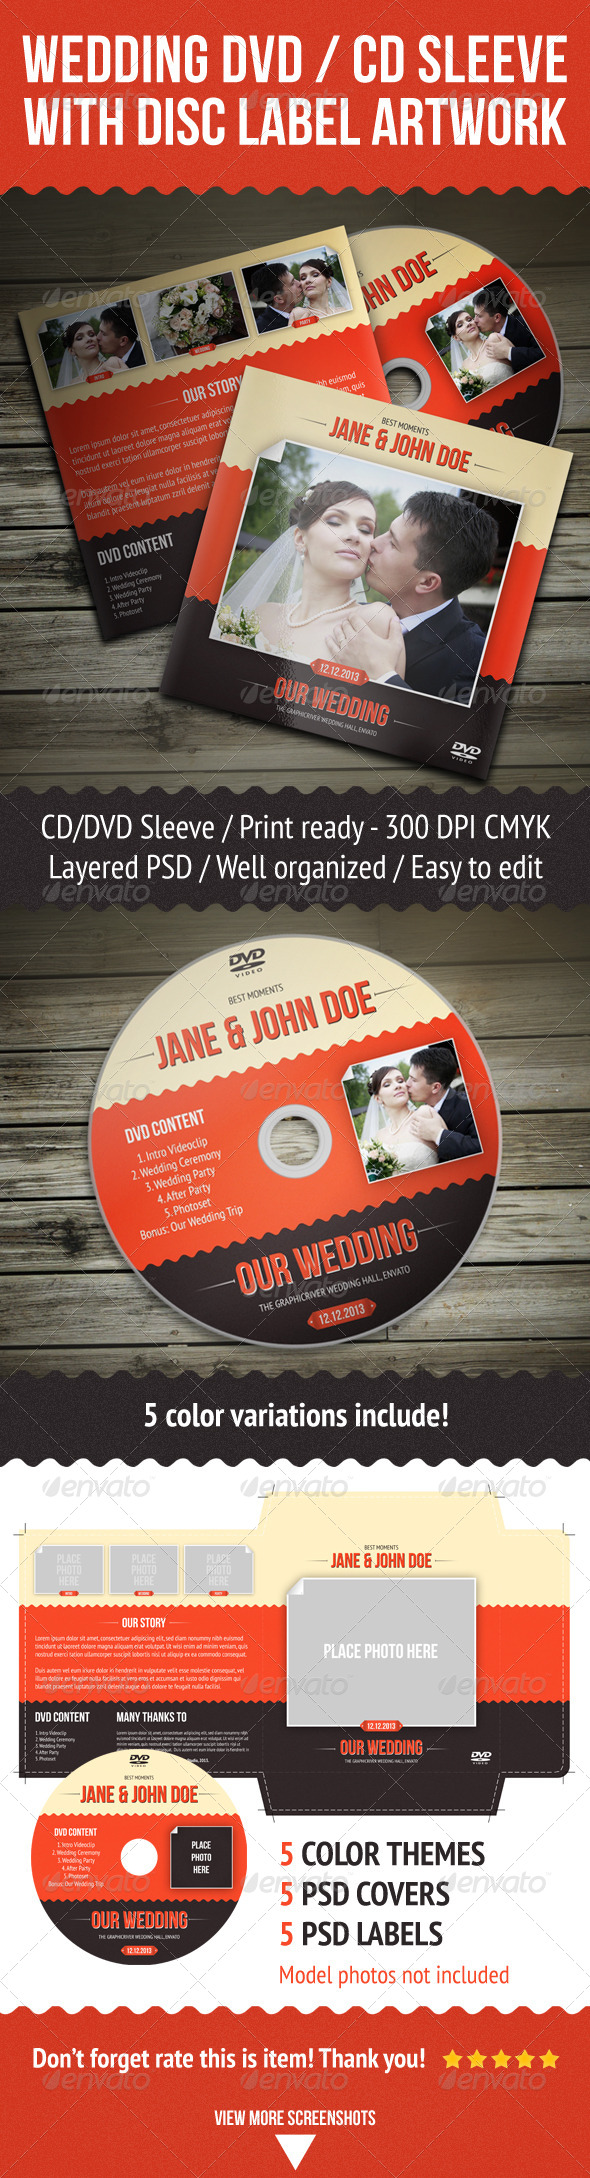 Dvd souvenir marriage certificate